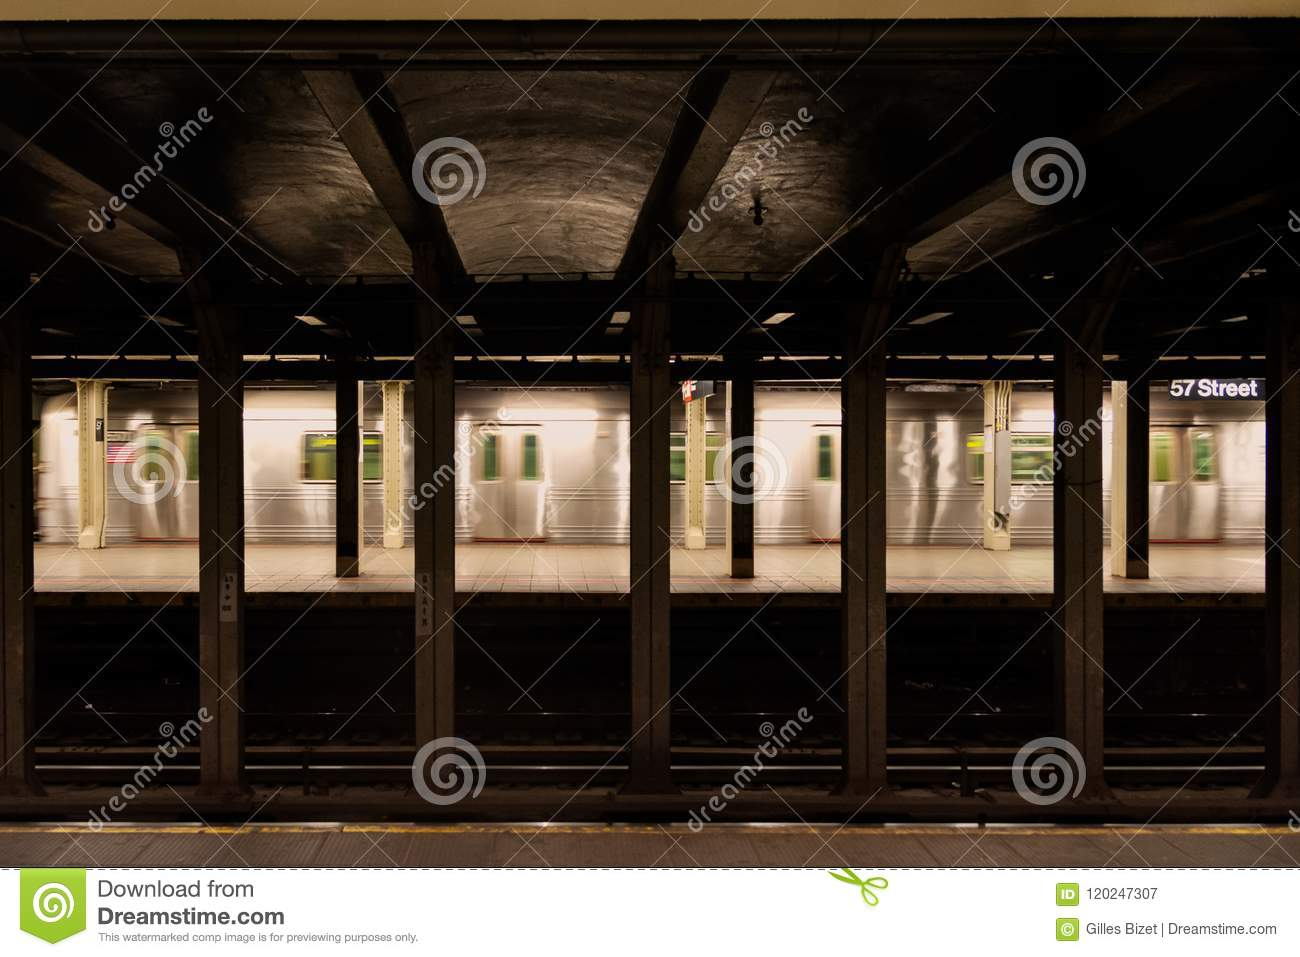 New York City Subway in 57 th station